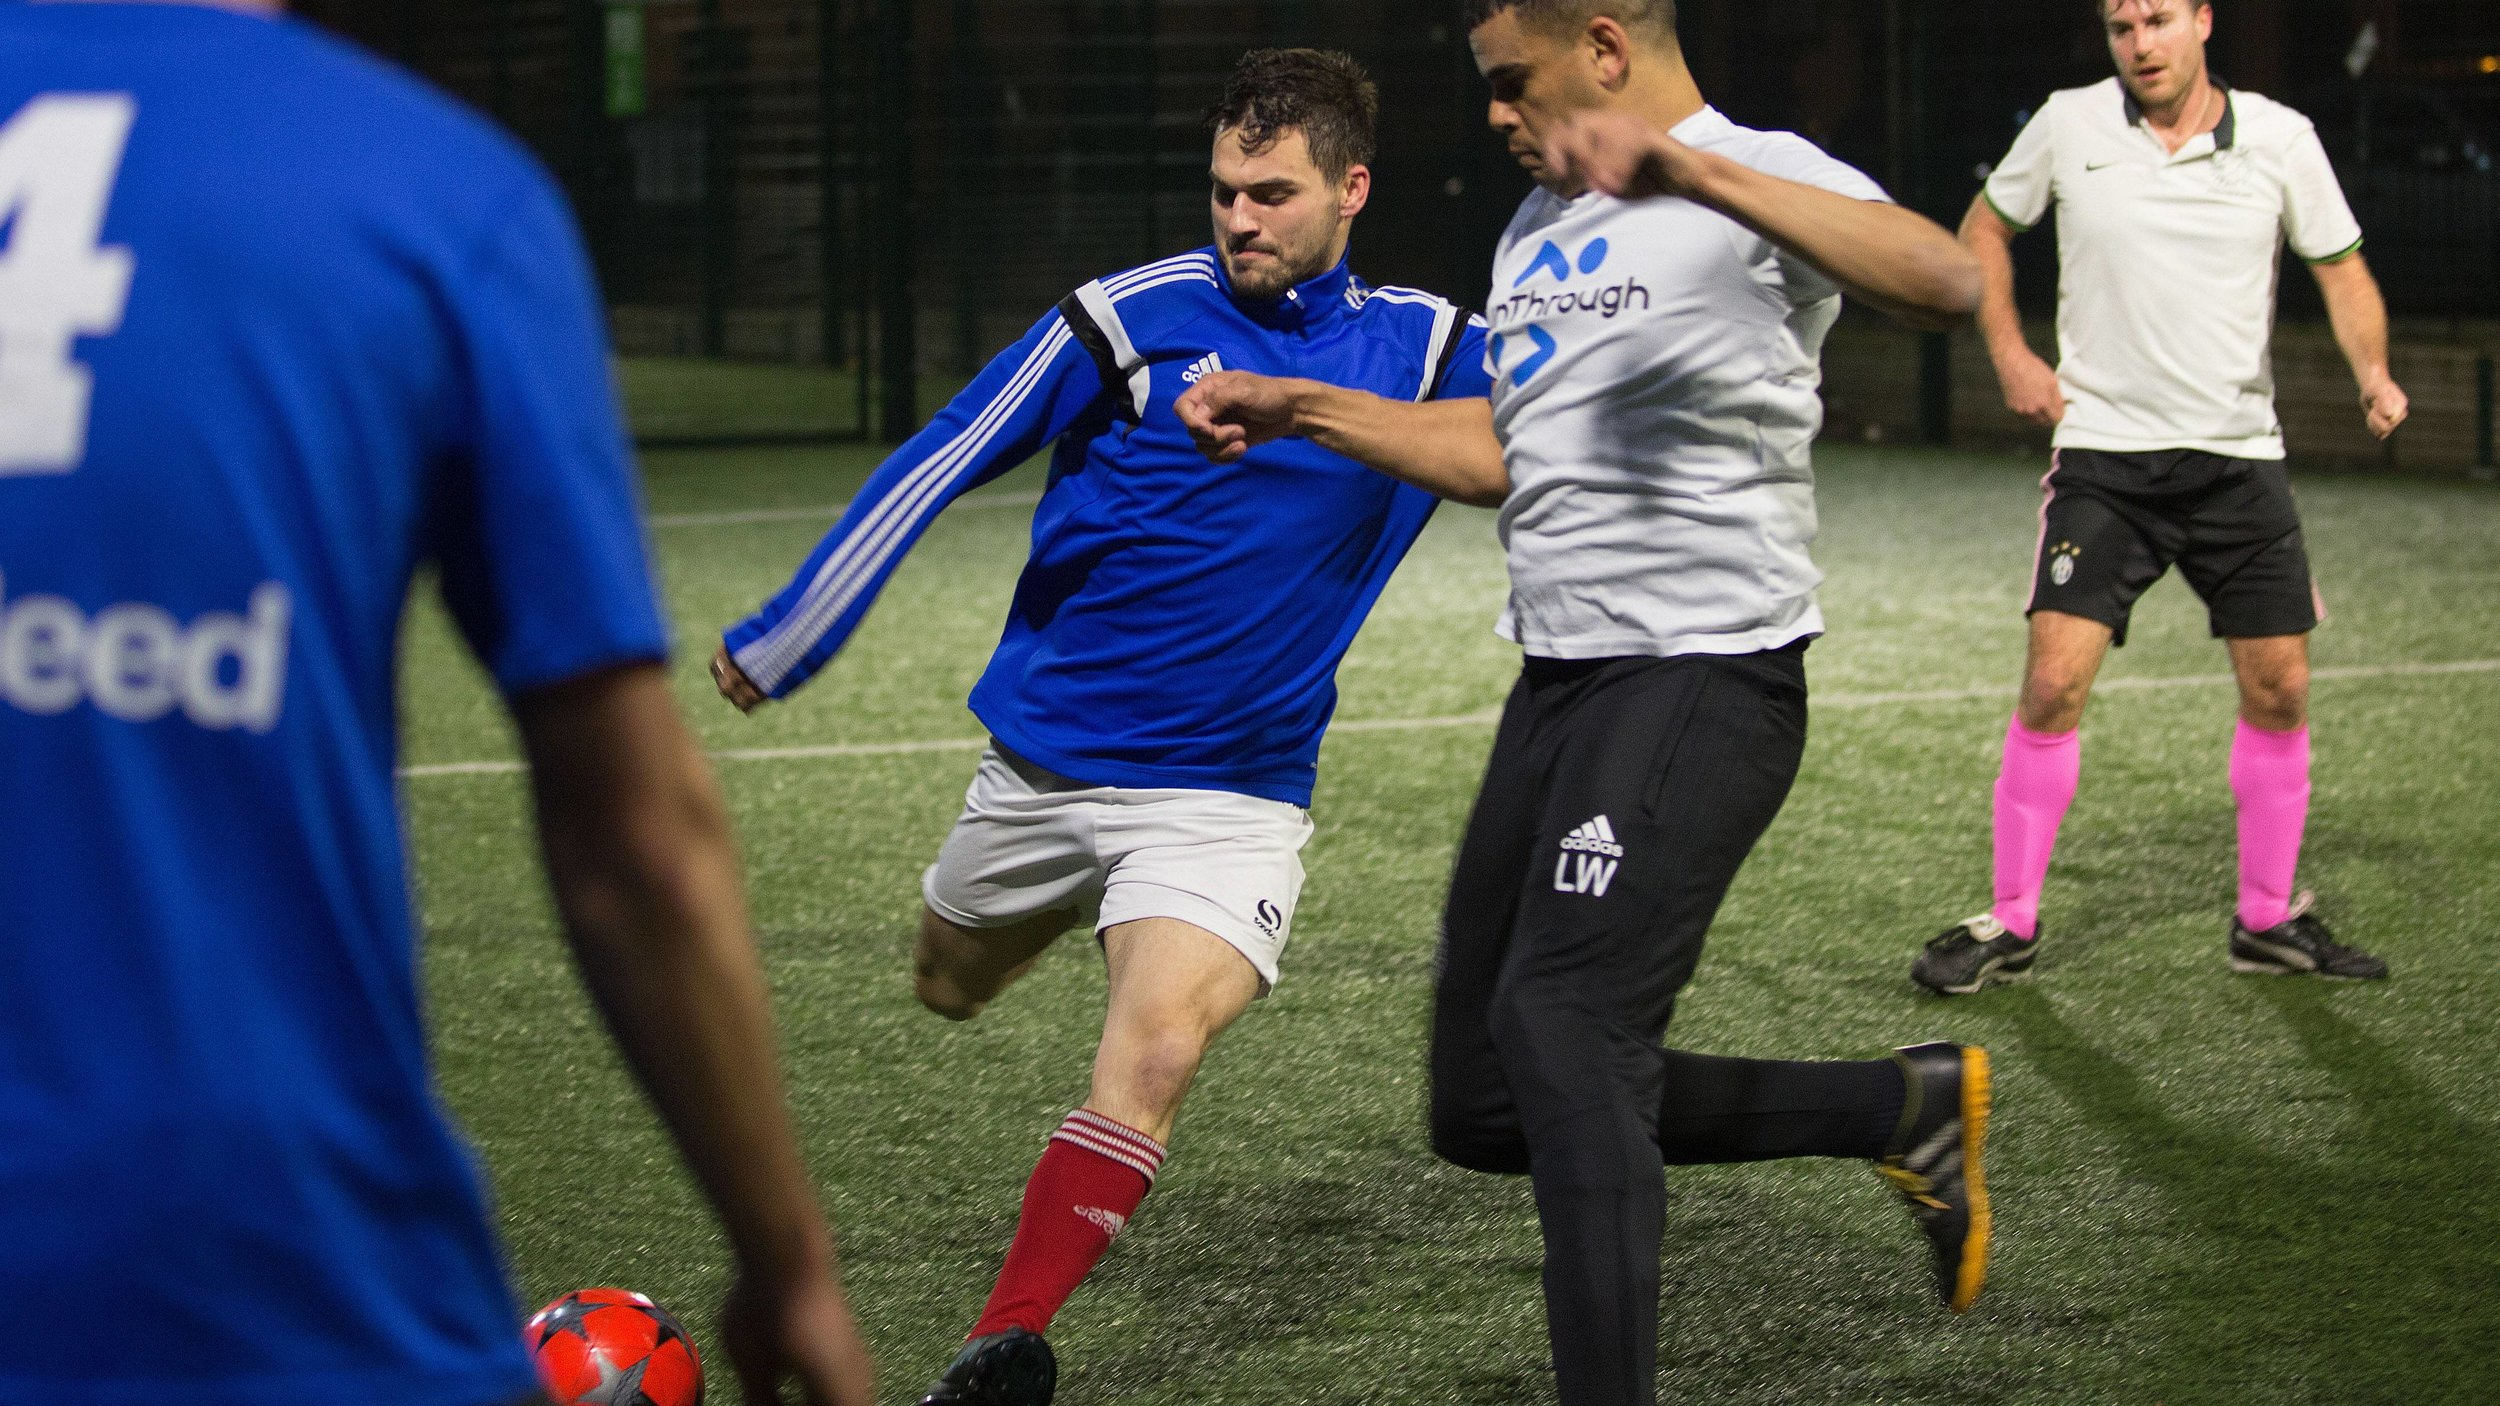 Stonewall FC in action